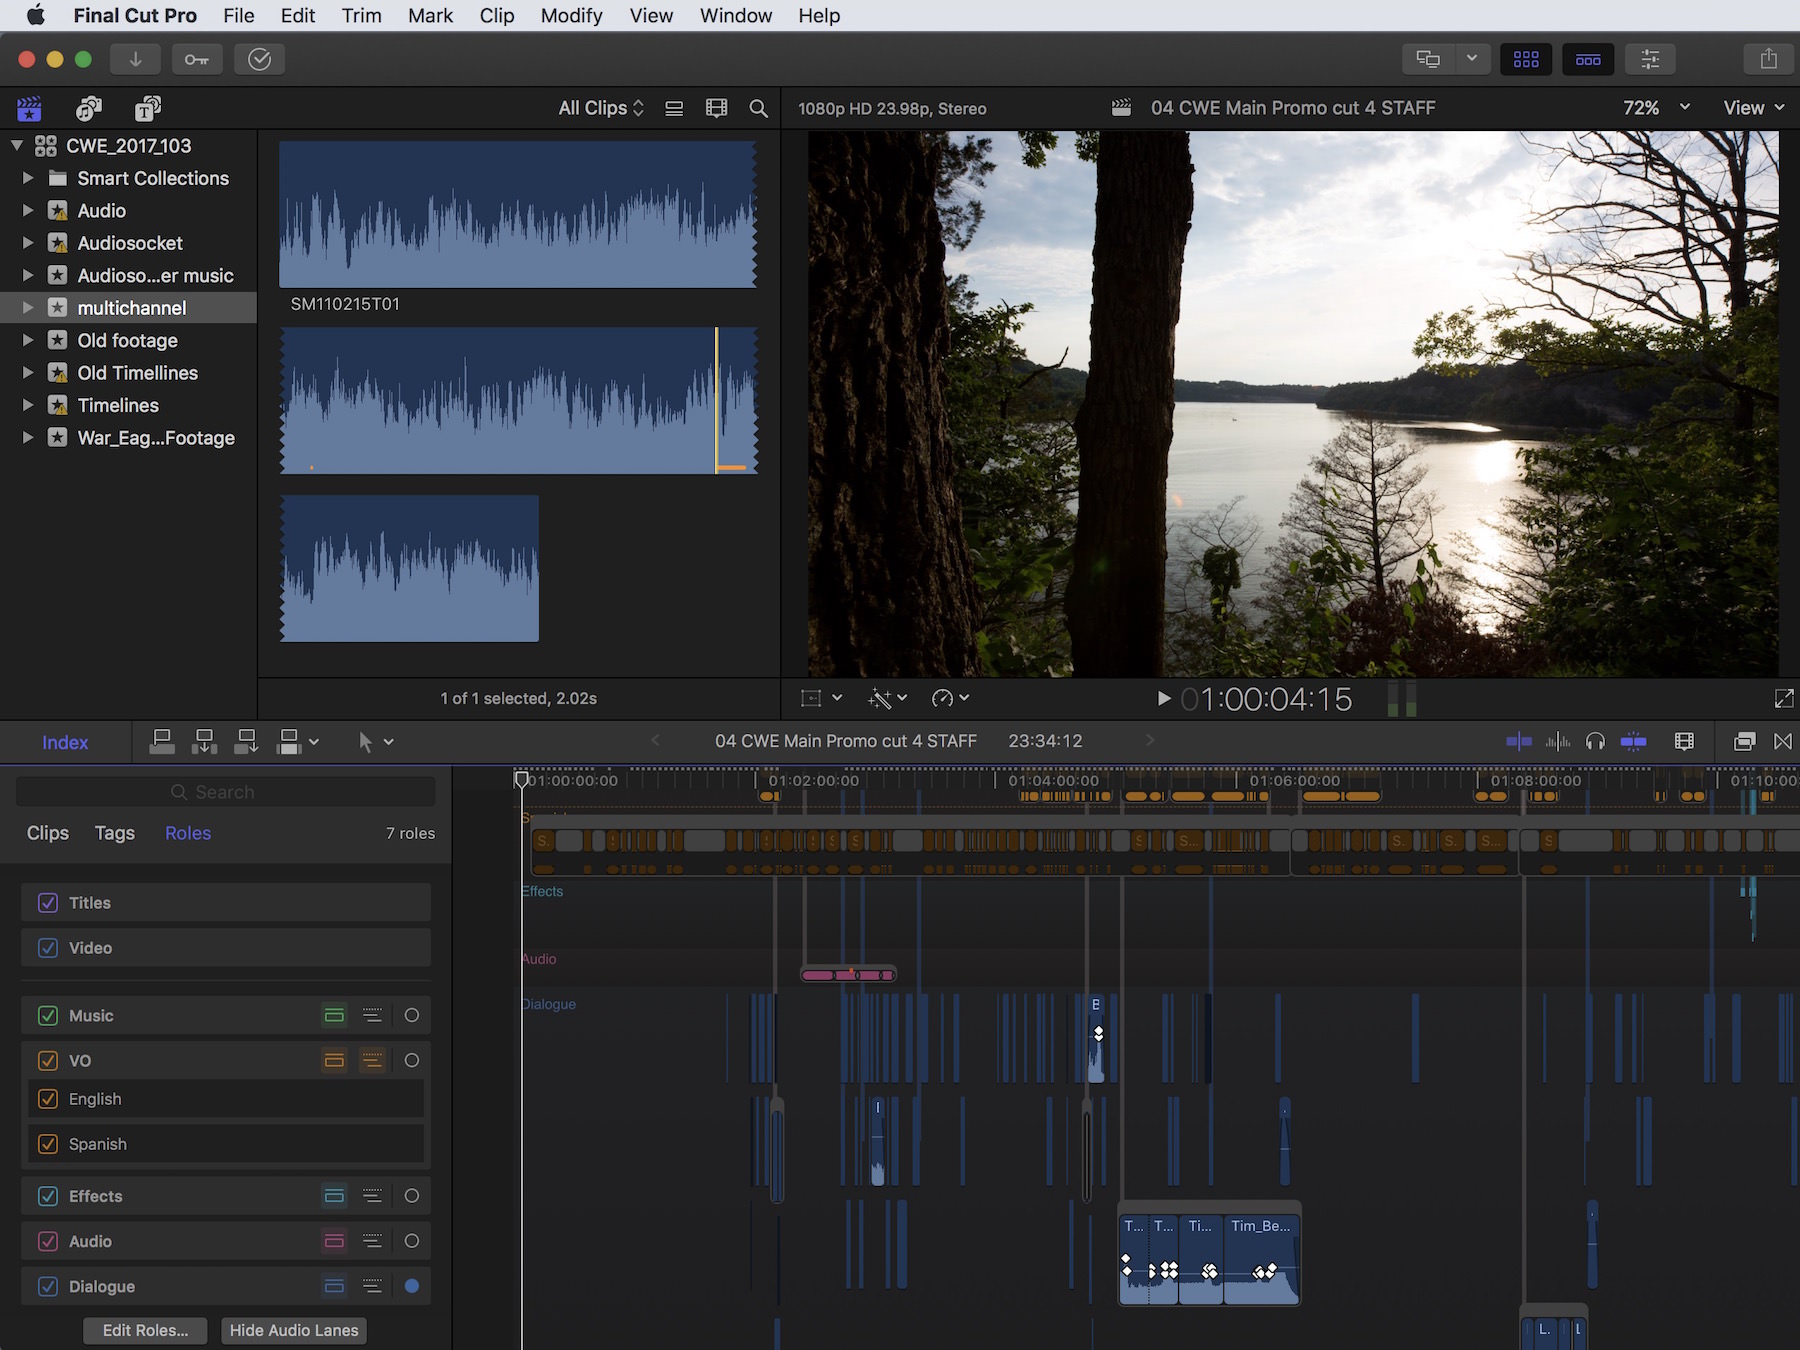 The first thing you'll notice in Final Cut Pro X 10.3? The new interface. The first thing you'll study? The new implementation of Audio Roles and new feature in Audio Lanes.